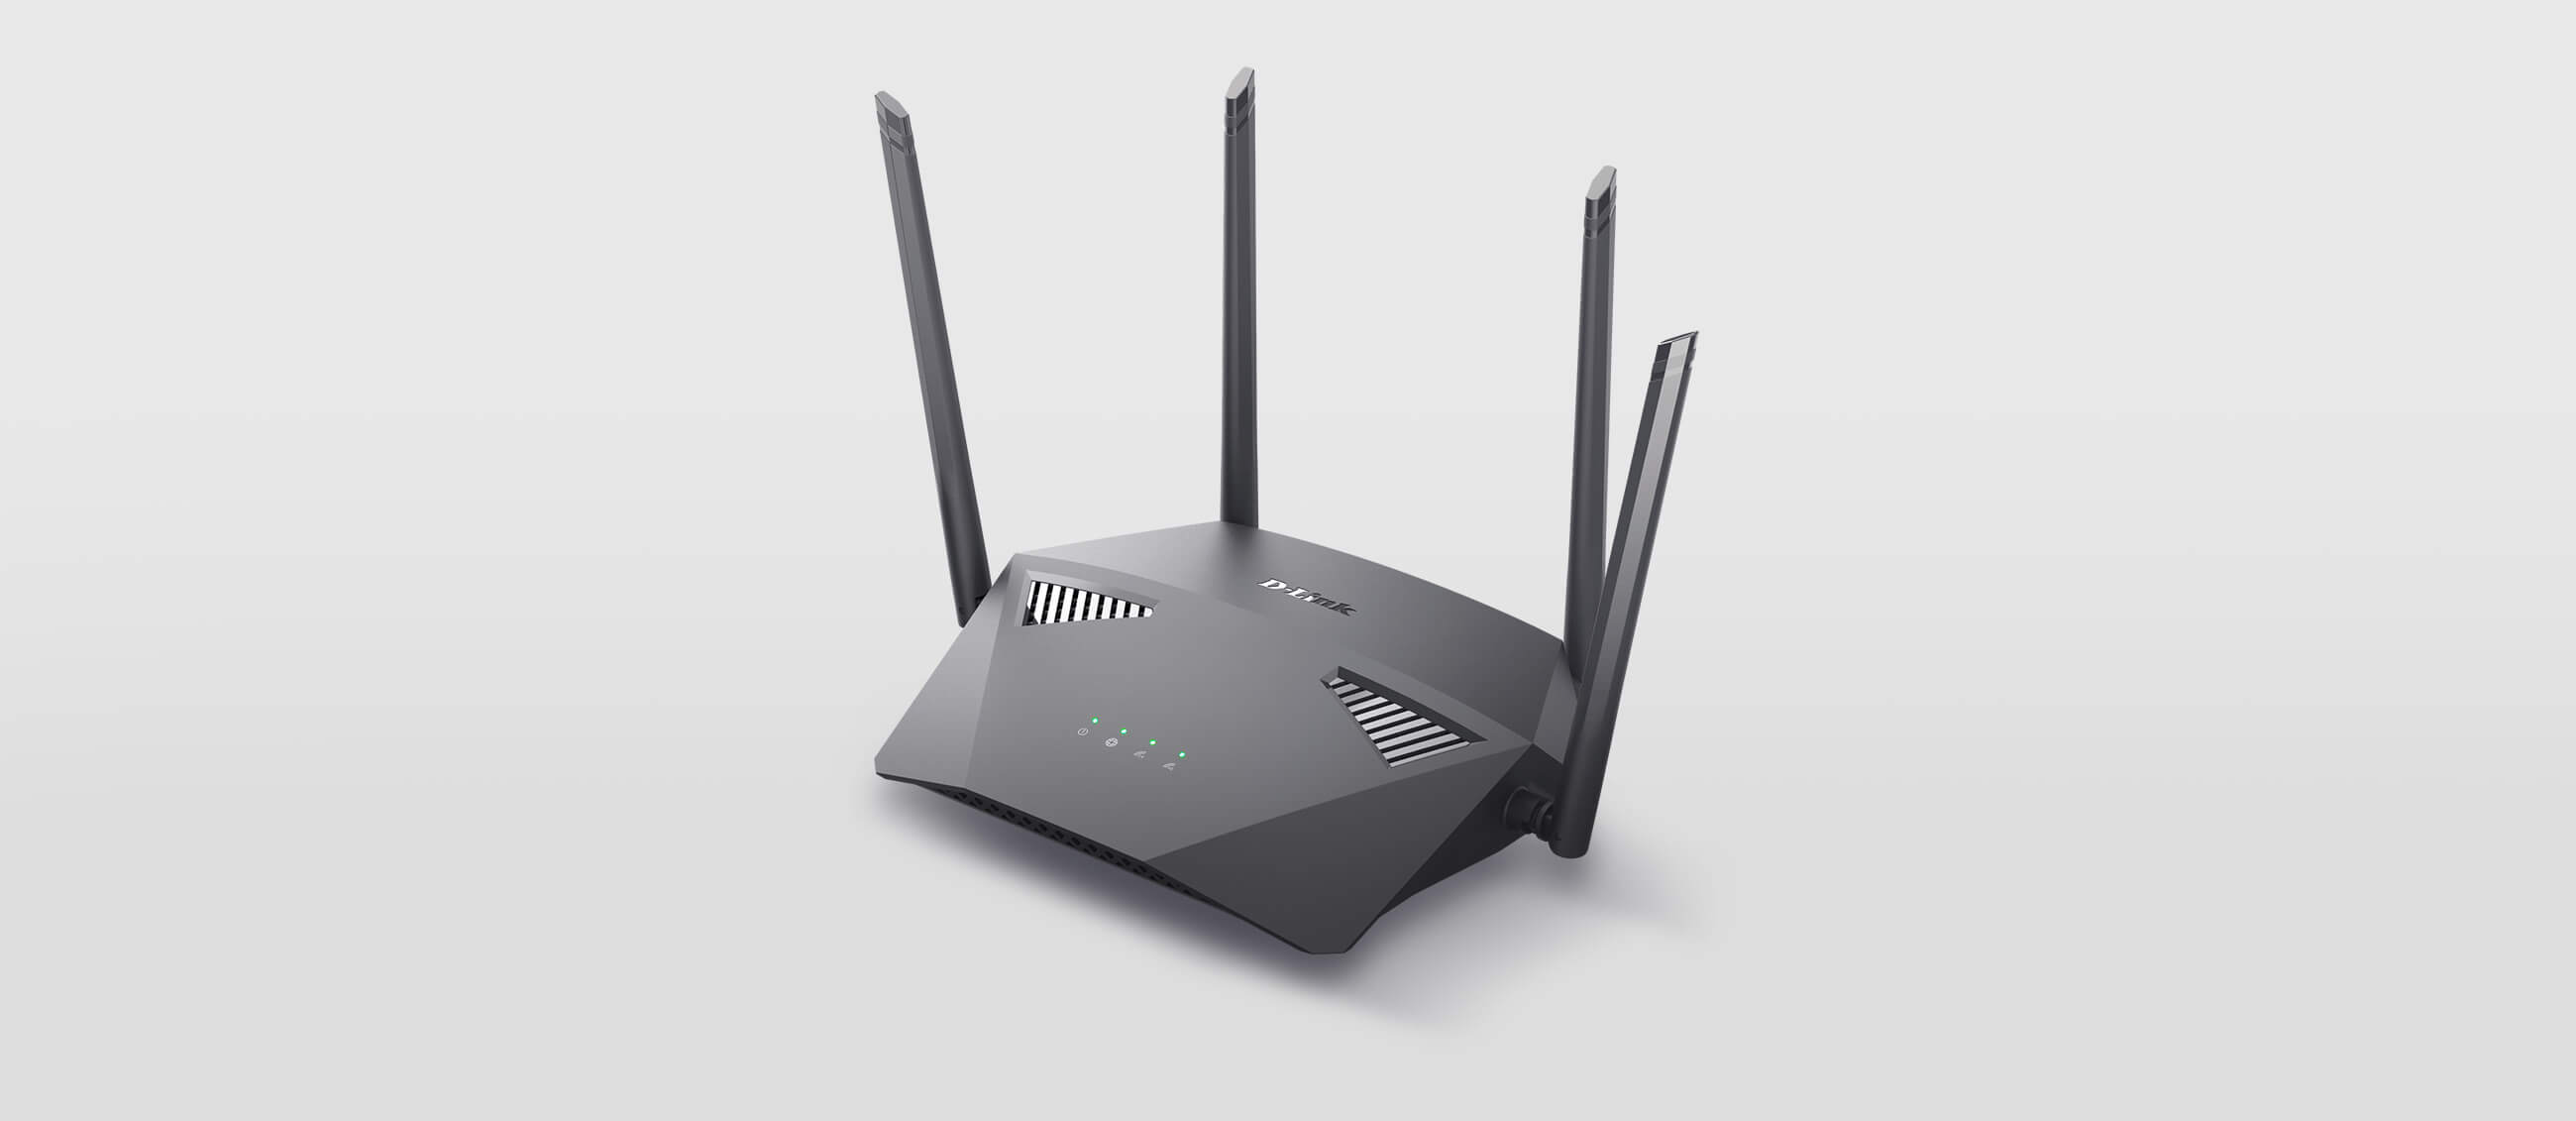 DIR-1950 AC1900 MU-MIMO Wi-Fi Router with a grey background